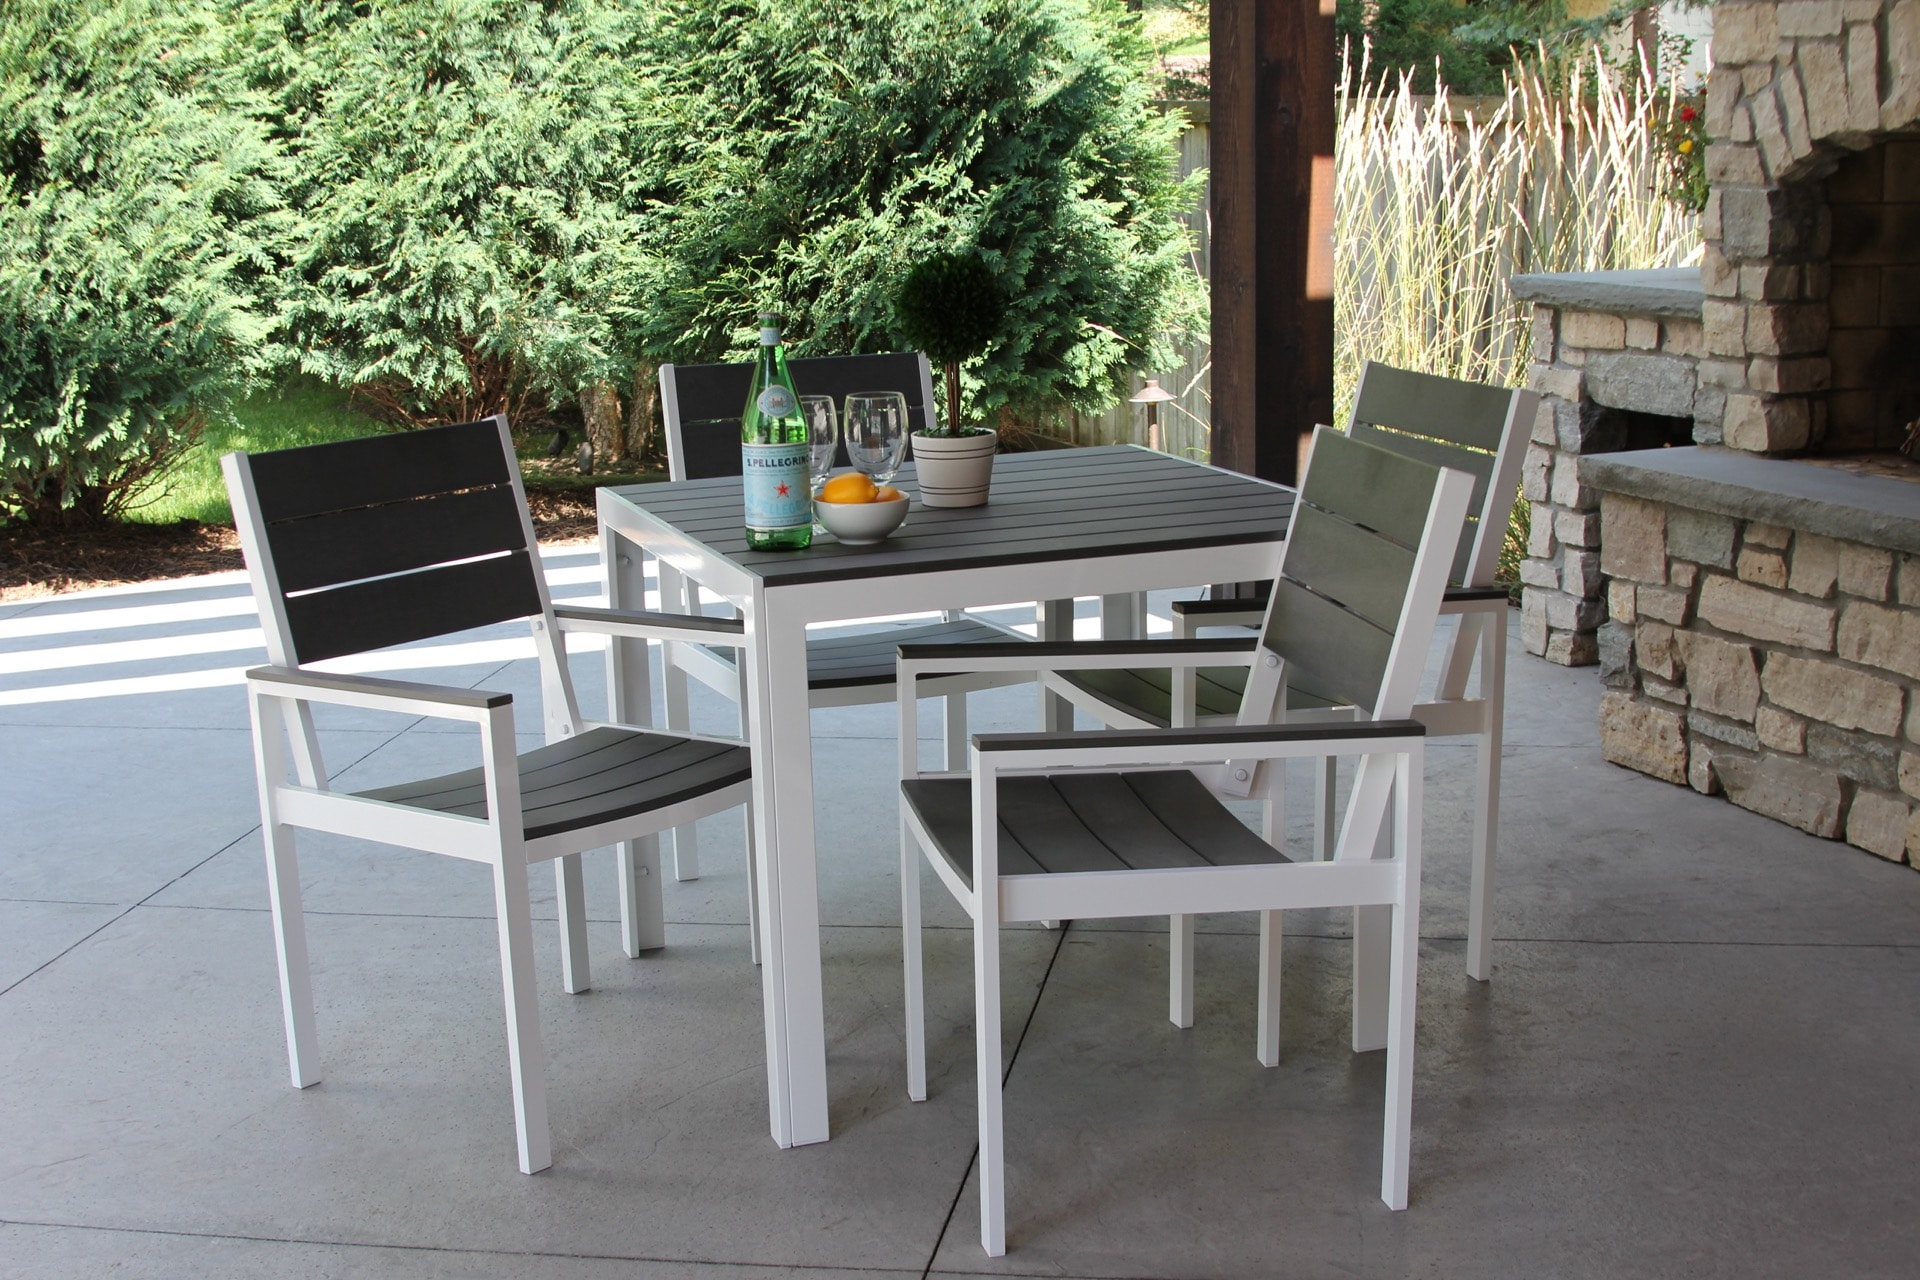 White On Gray Winston 5 Piece Outdoor Dining Set U2014 MELDECCO PATIO FURNITURE